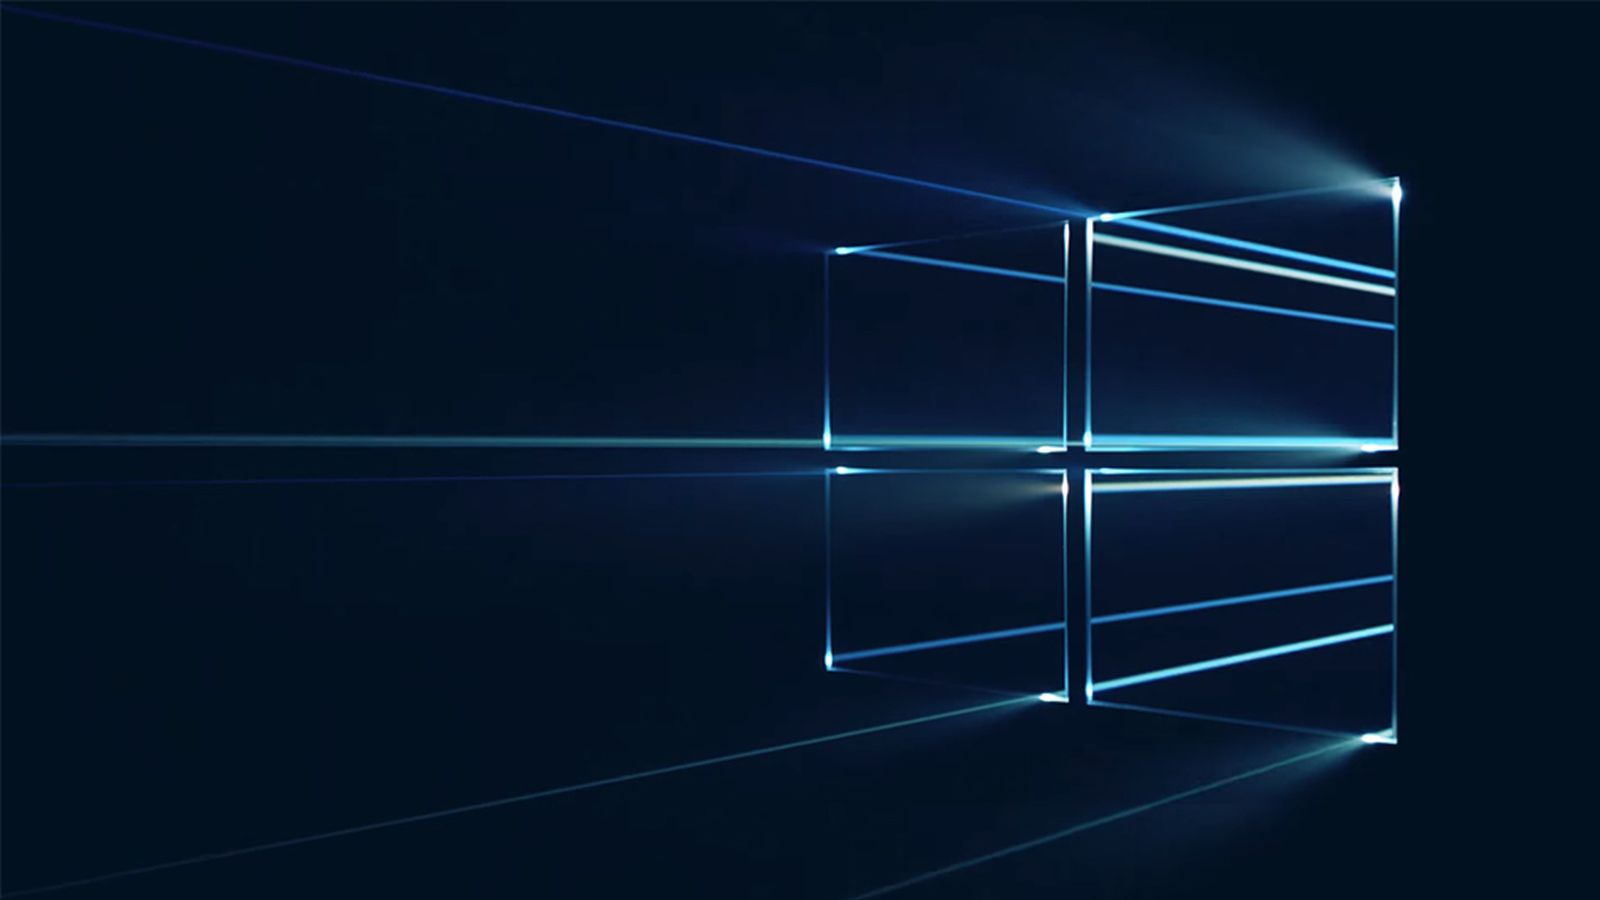 3d Animated Wallpapers For Windows 7 This Music Video From Microsoft Is Pure Windows 10 Hype